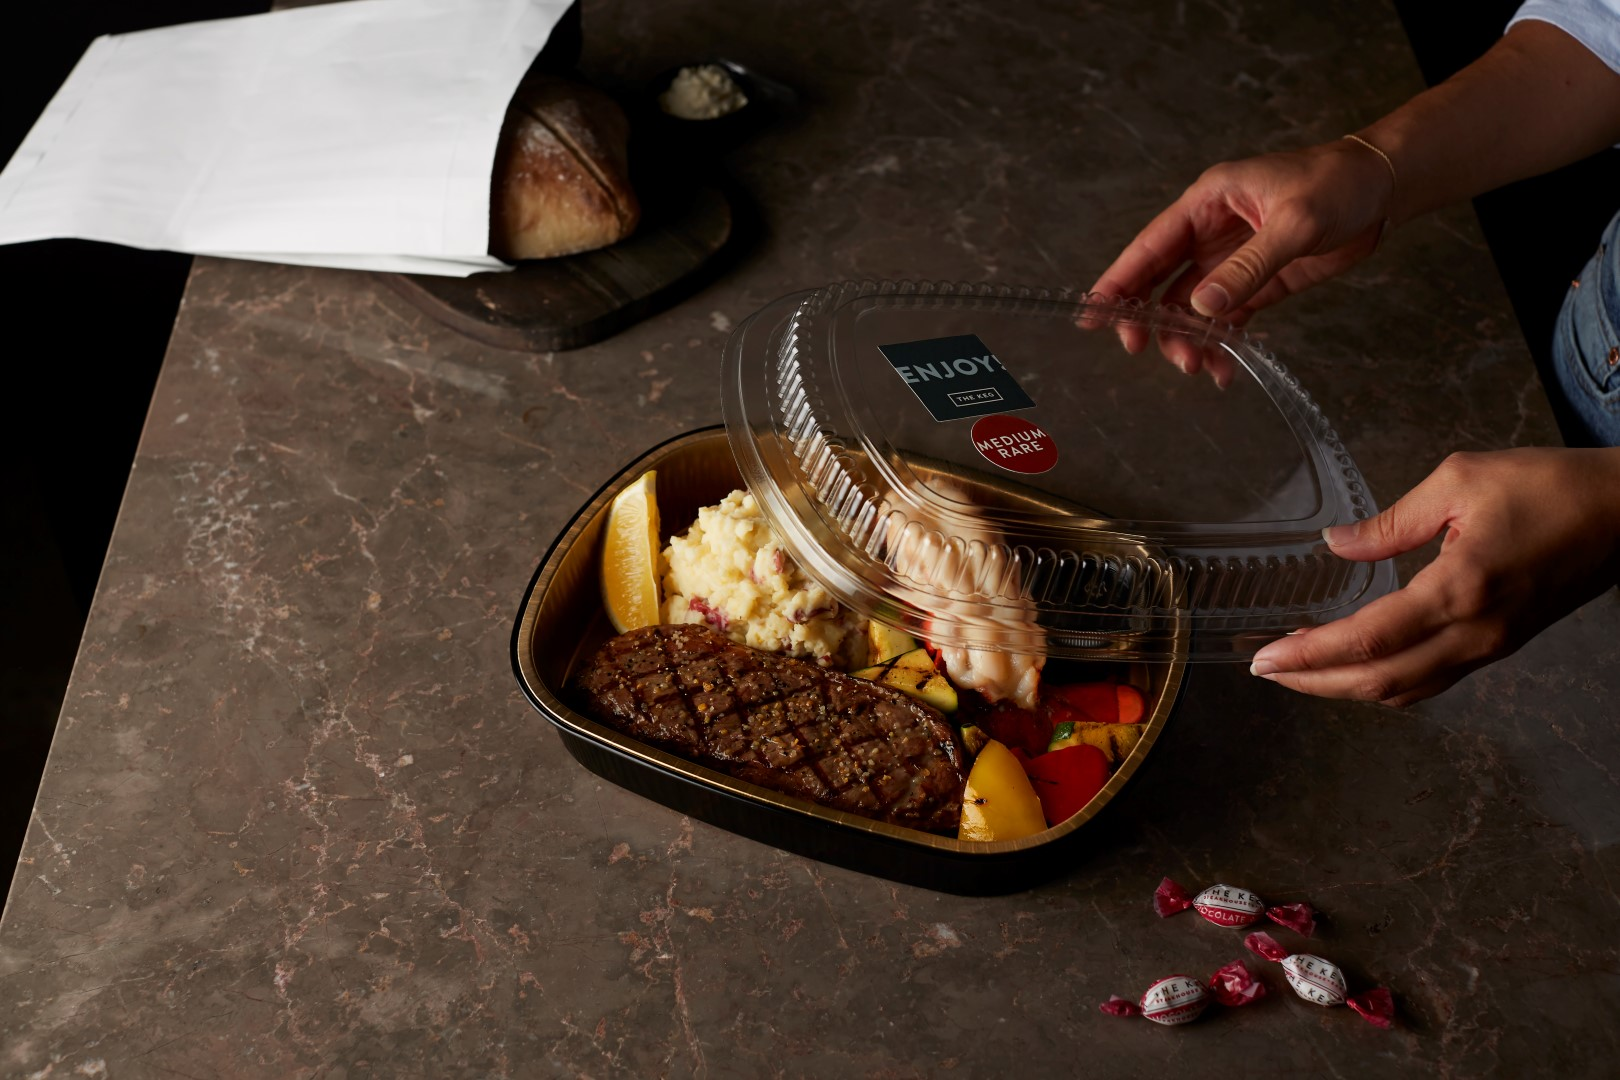 Takeout container with steak and lobster and hand holding cover